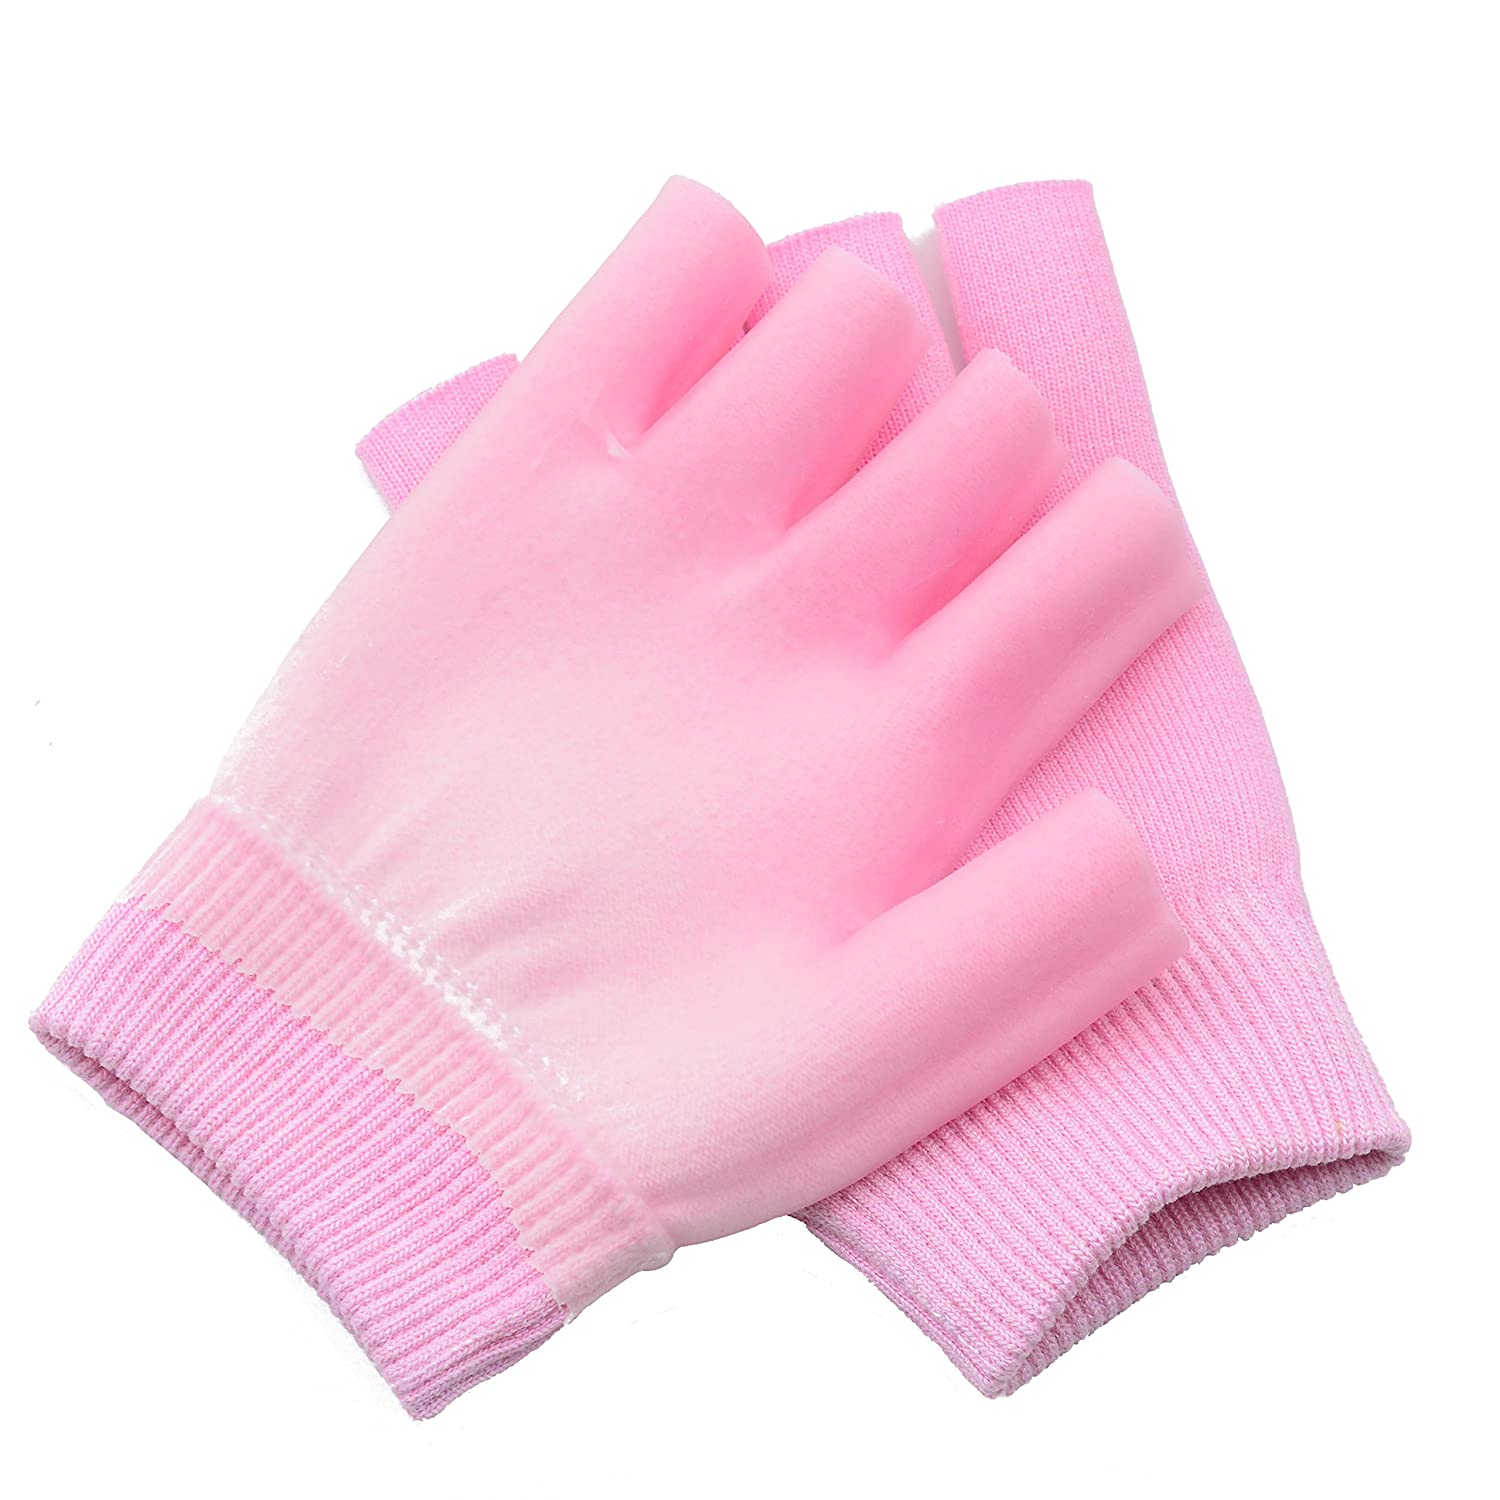 1 Pair Moisturizing Spa Gloves Half Finger Touch Screen Gloves Gel Line with Essential Oils and Vitamin E (Pink feather) Makhry